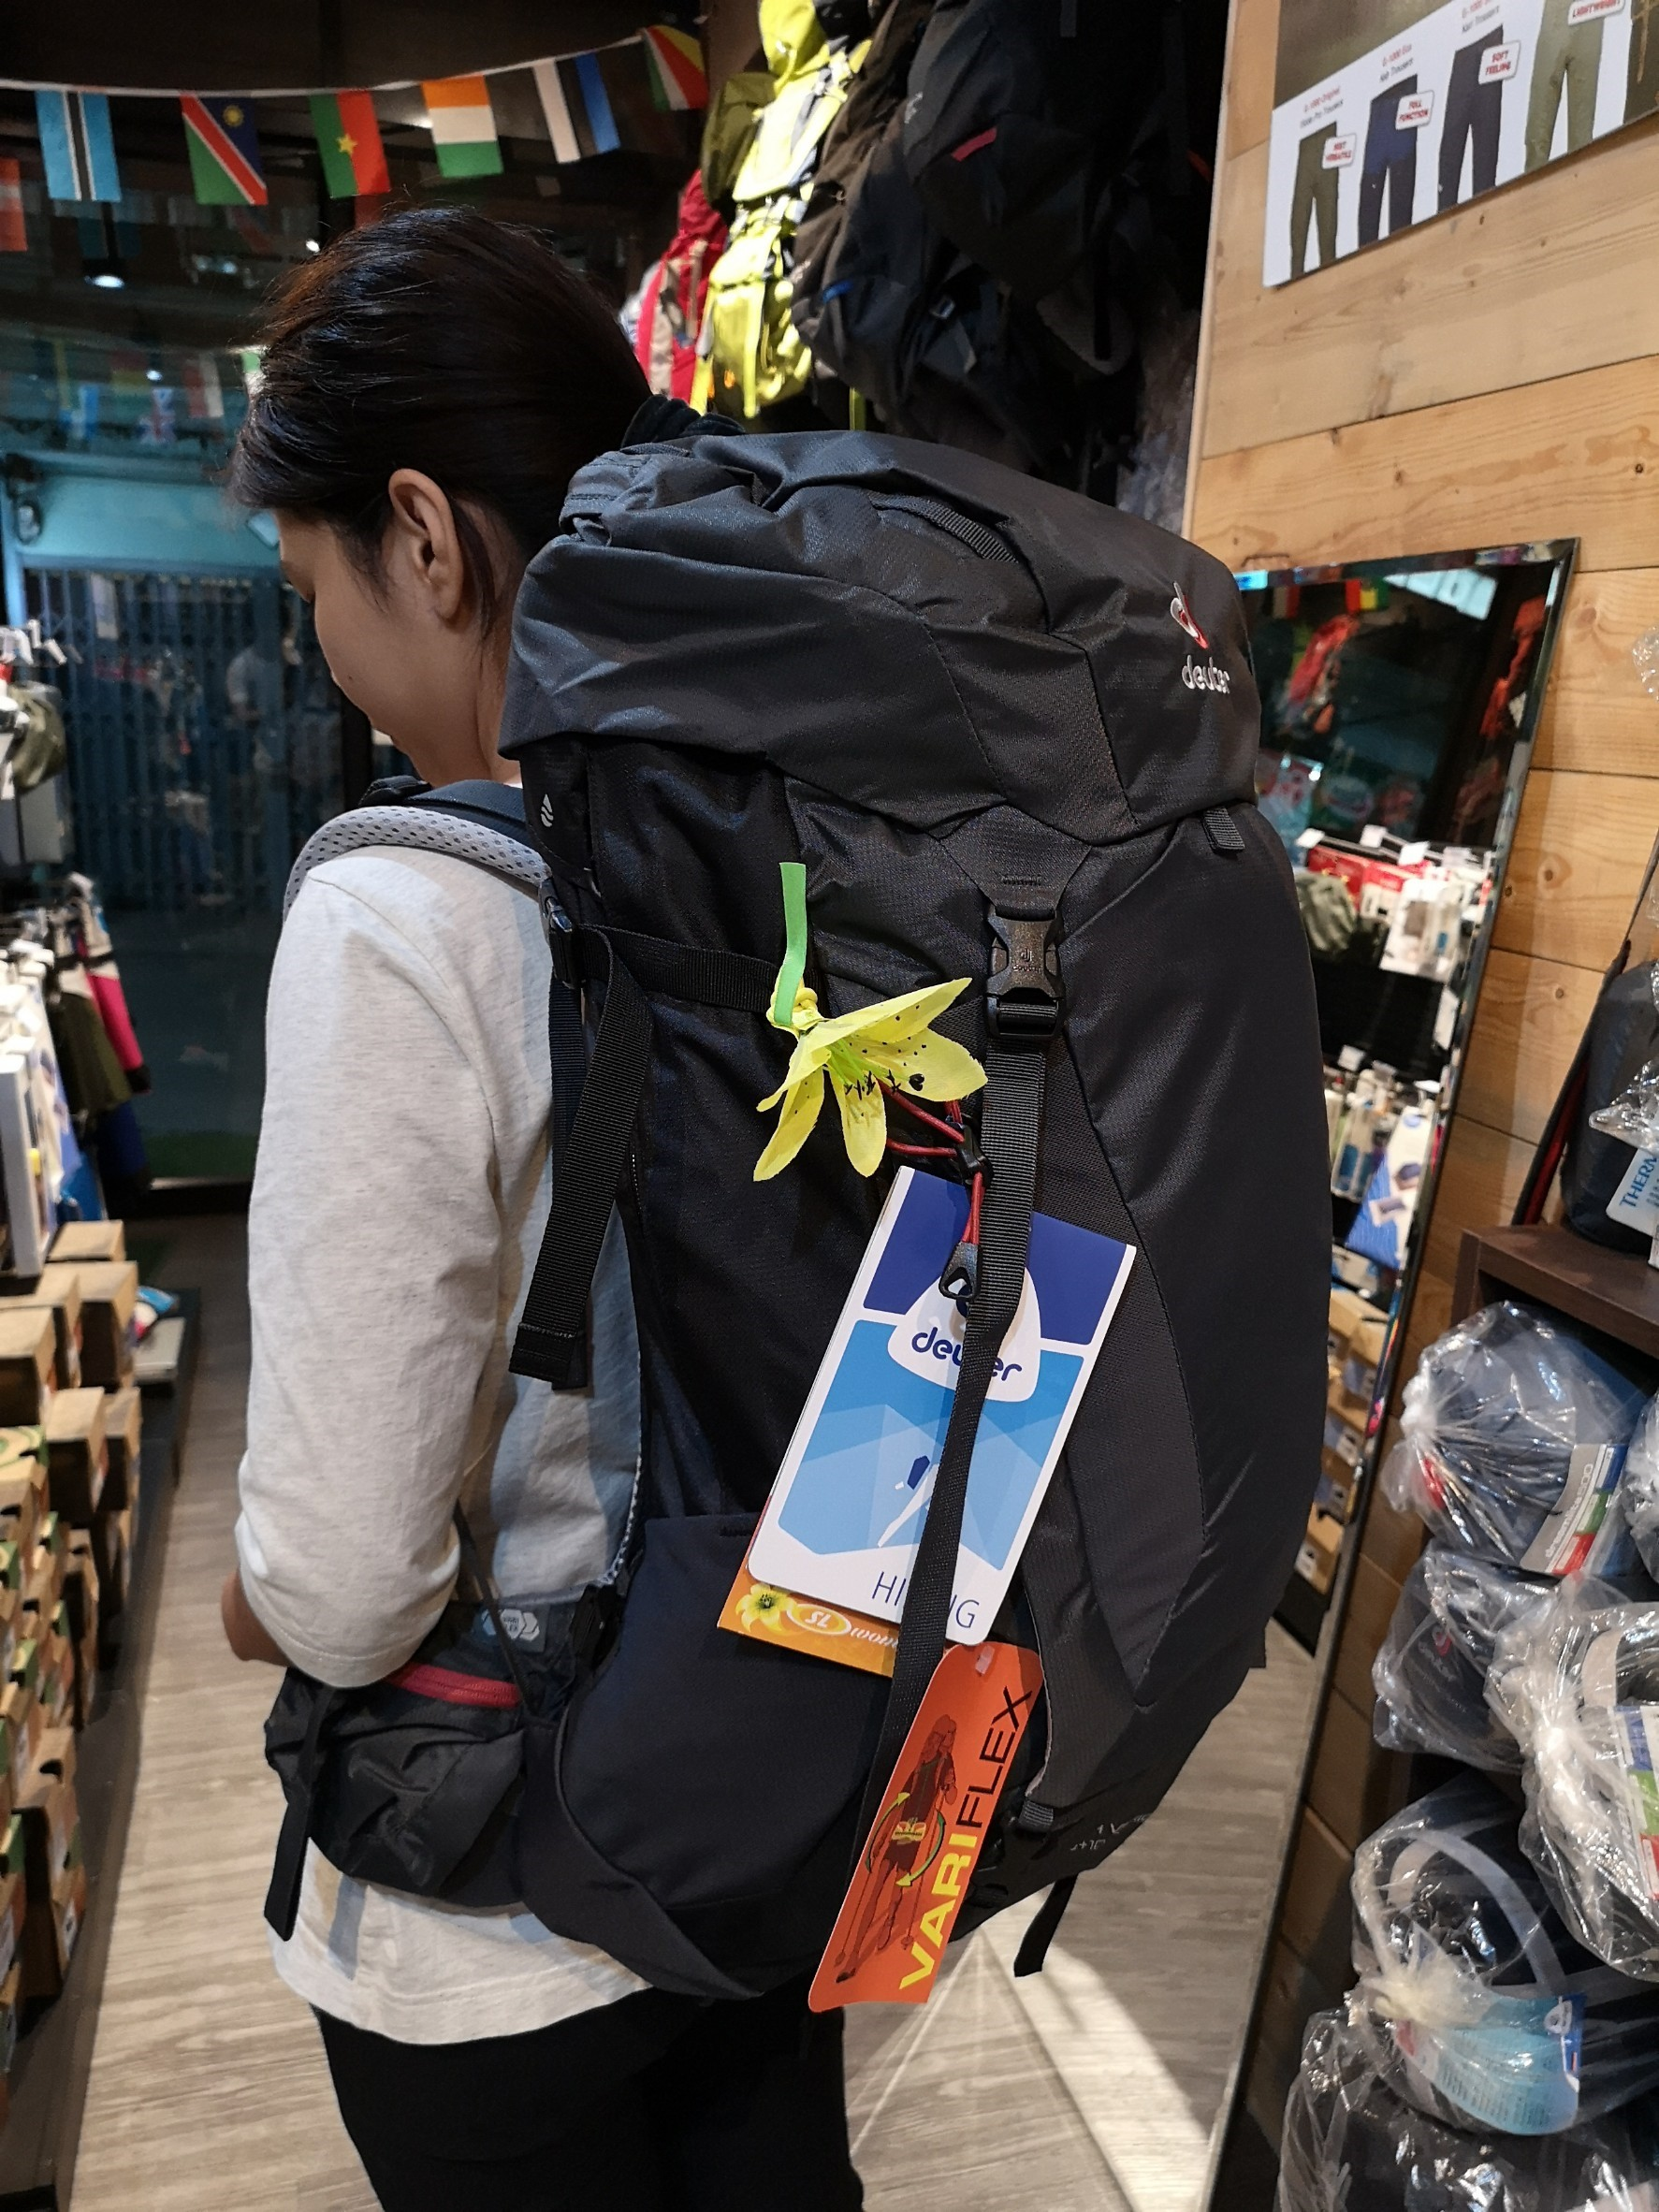 9df6b252d75 DEUTER Futura Vario 45+10 SL Graphite Black - The Puffin House ...